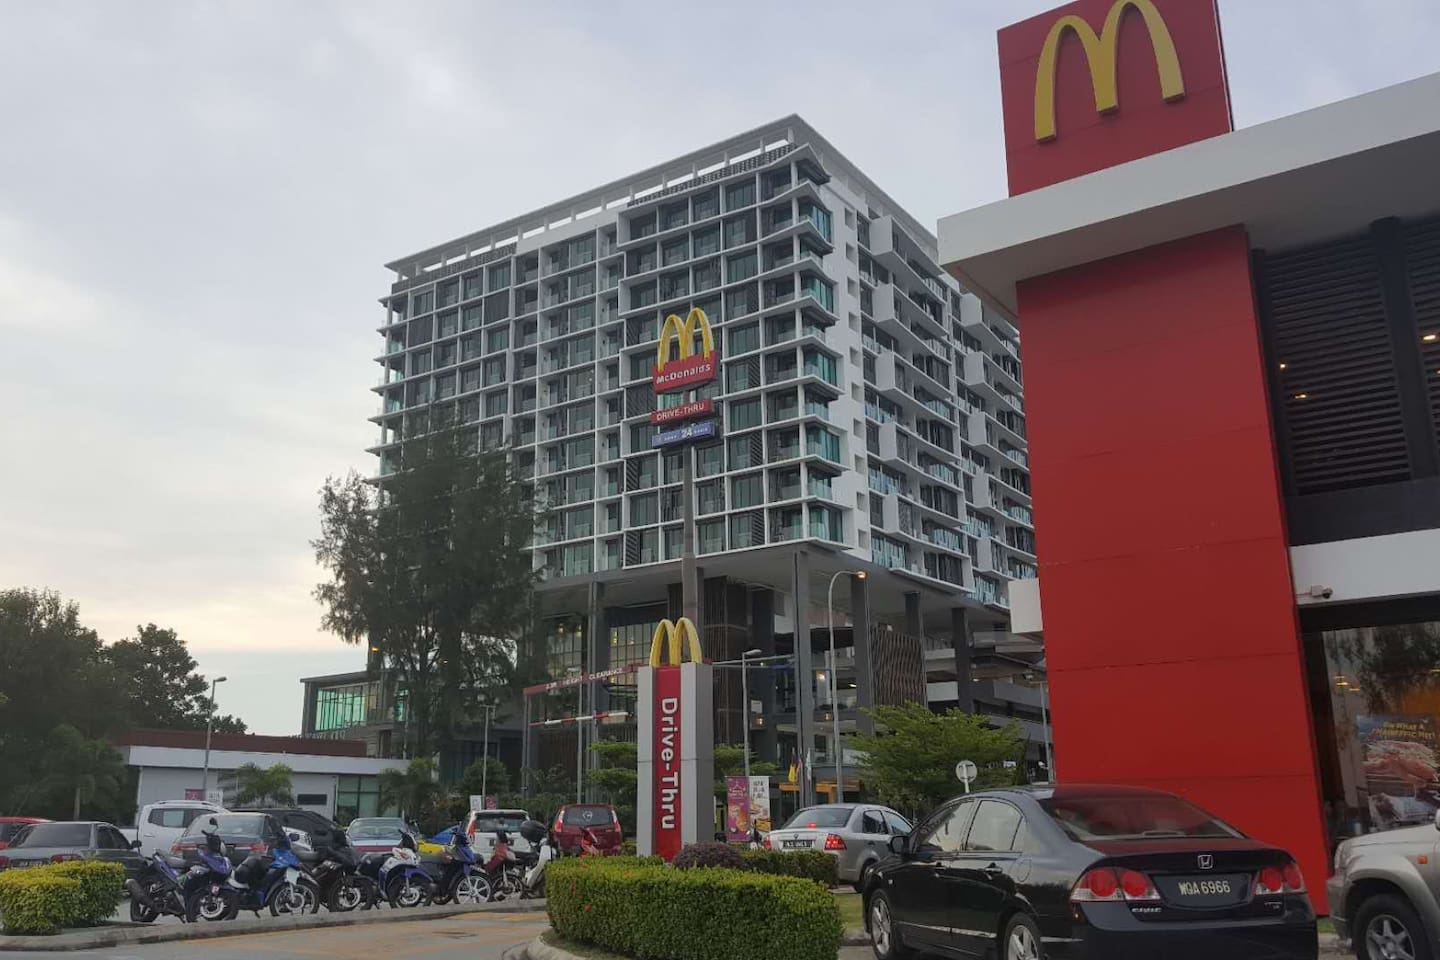 Located at D'Wharf Hotel & Serviced Residence. Mac'D is down there. And also Starbucks, Kenny Rogers, Thai Restaurant,  Korean restaurant, Chinese Restaurant, Cafes, etc convenient for dining.